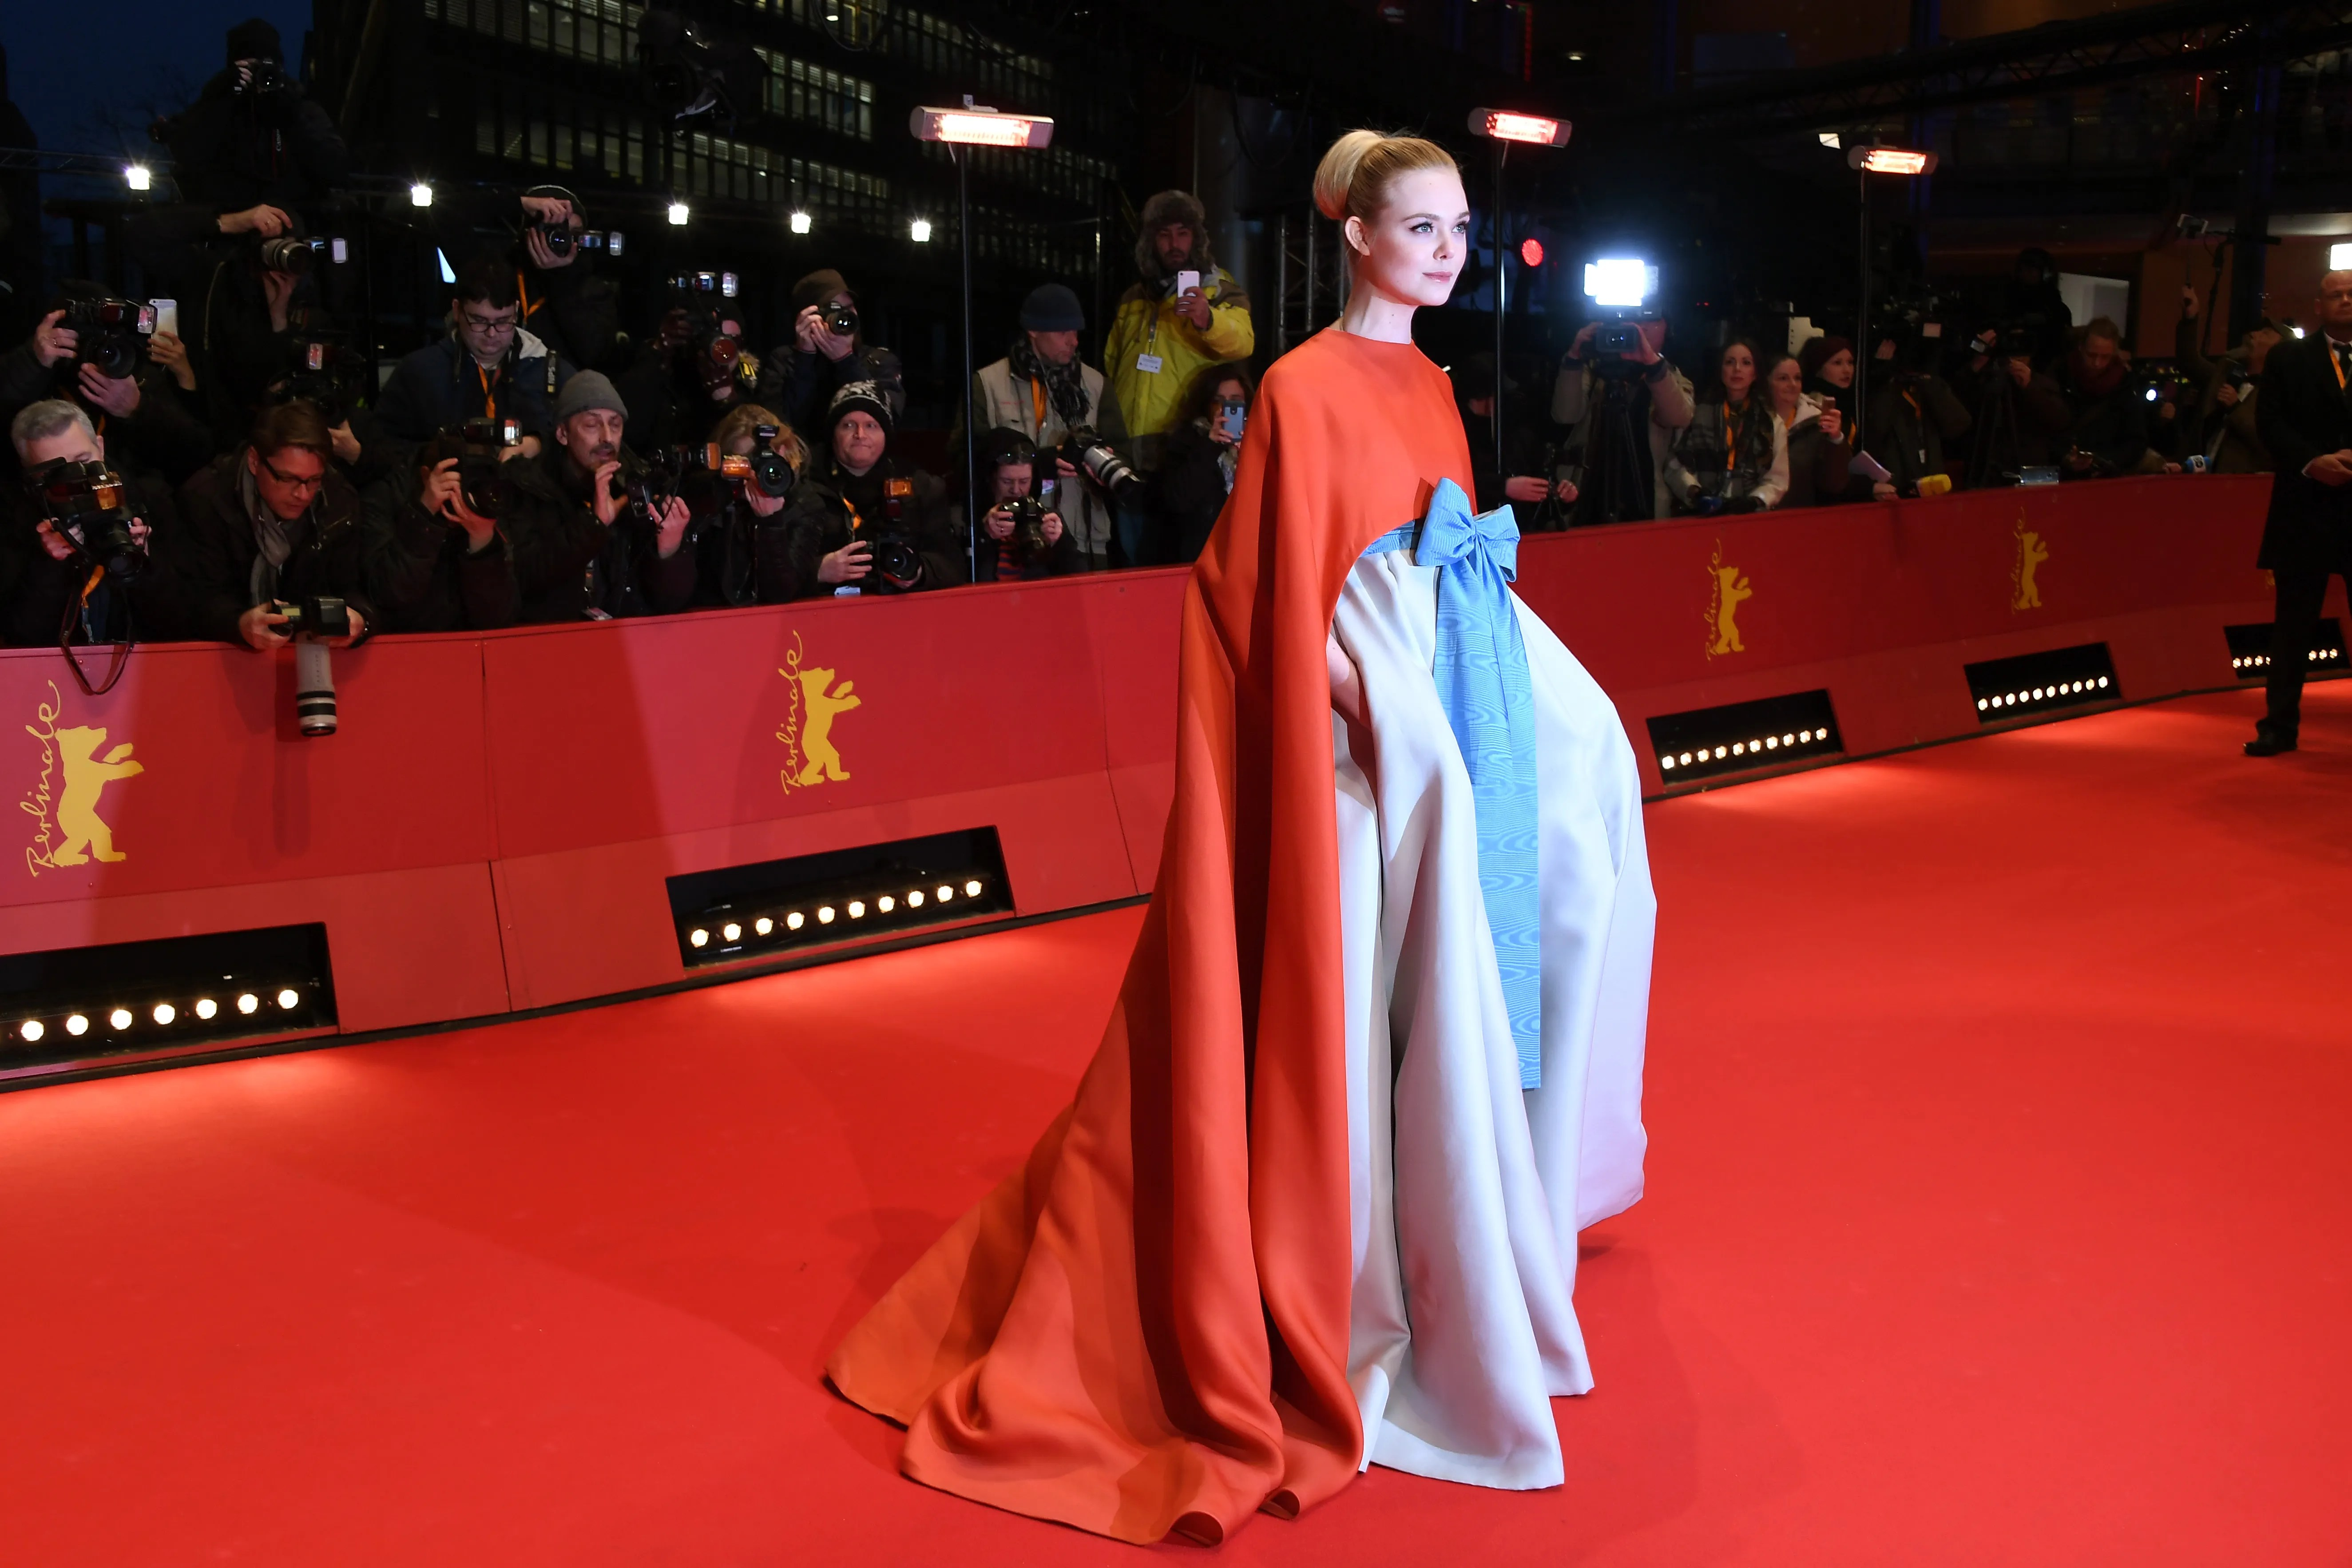 Berlinale 2016 Roter Teppich Filme Highlights Roter Teppich Die Stars Der Berlinale